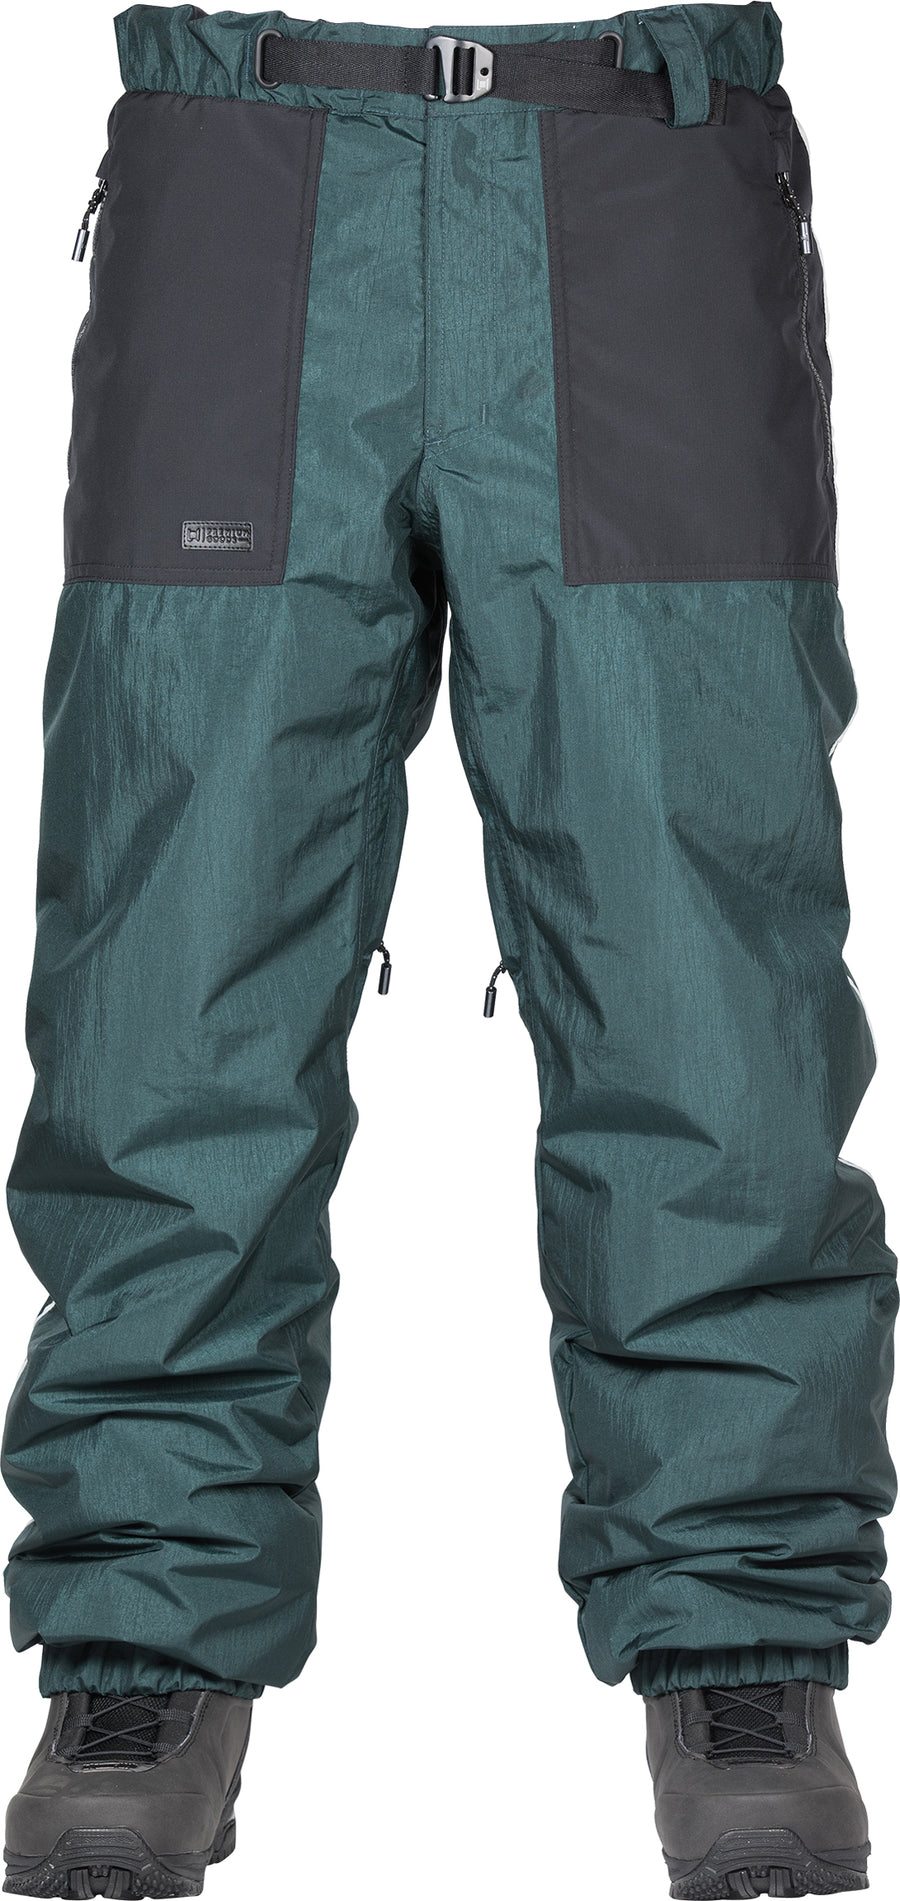 2021 L1 Ventura Snow Pant in Emerald and Black